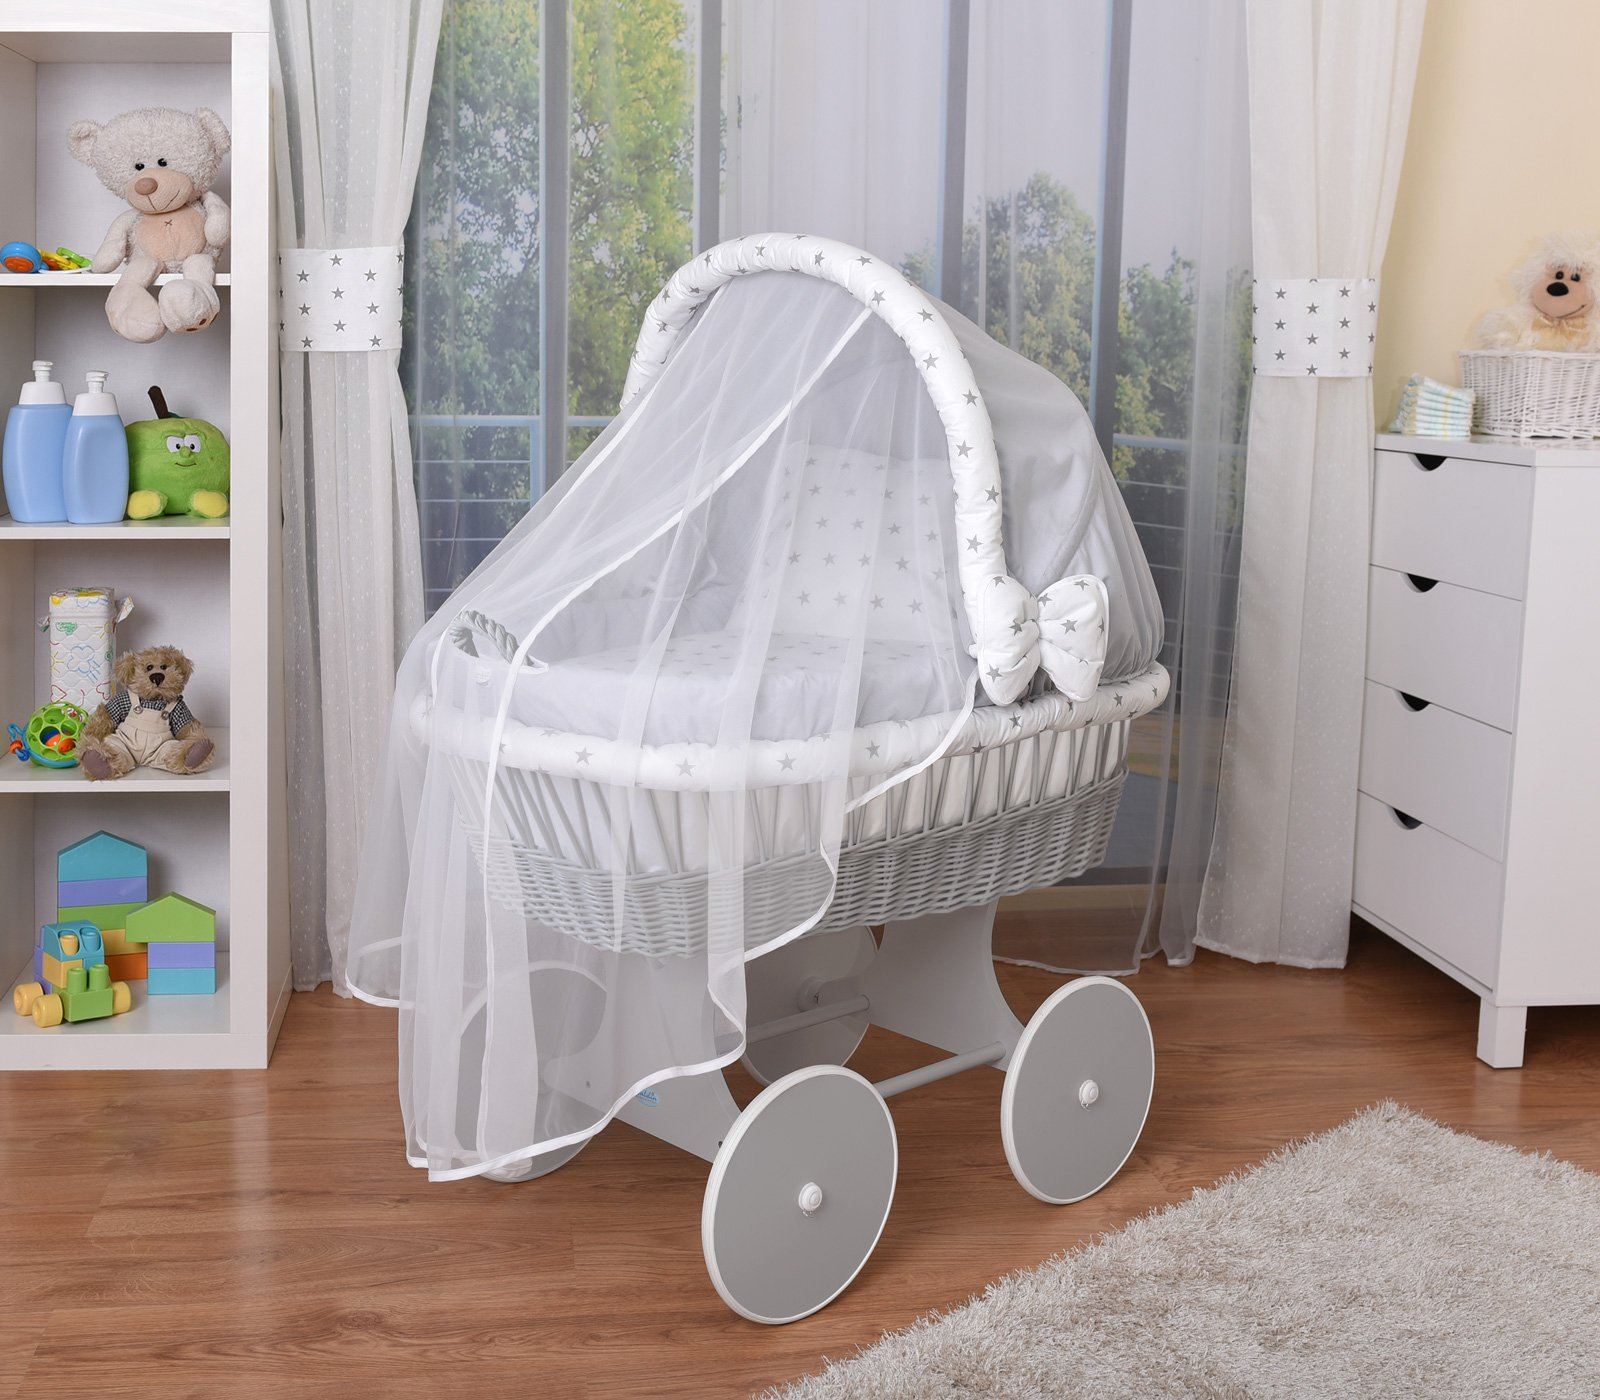 WALDIN Baby Wicker Cradle,Moses Basket,44 Models Available,Grey Painted Stand/Wheels,Textile Colour Grey/Grey Stars  For more models and colours on Amazon click on WALDIN under the title Bassinet complete with bedding and stand Certified to safety standard EN 1130-1/2 2